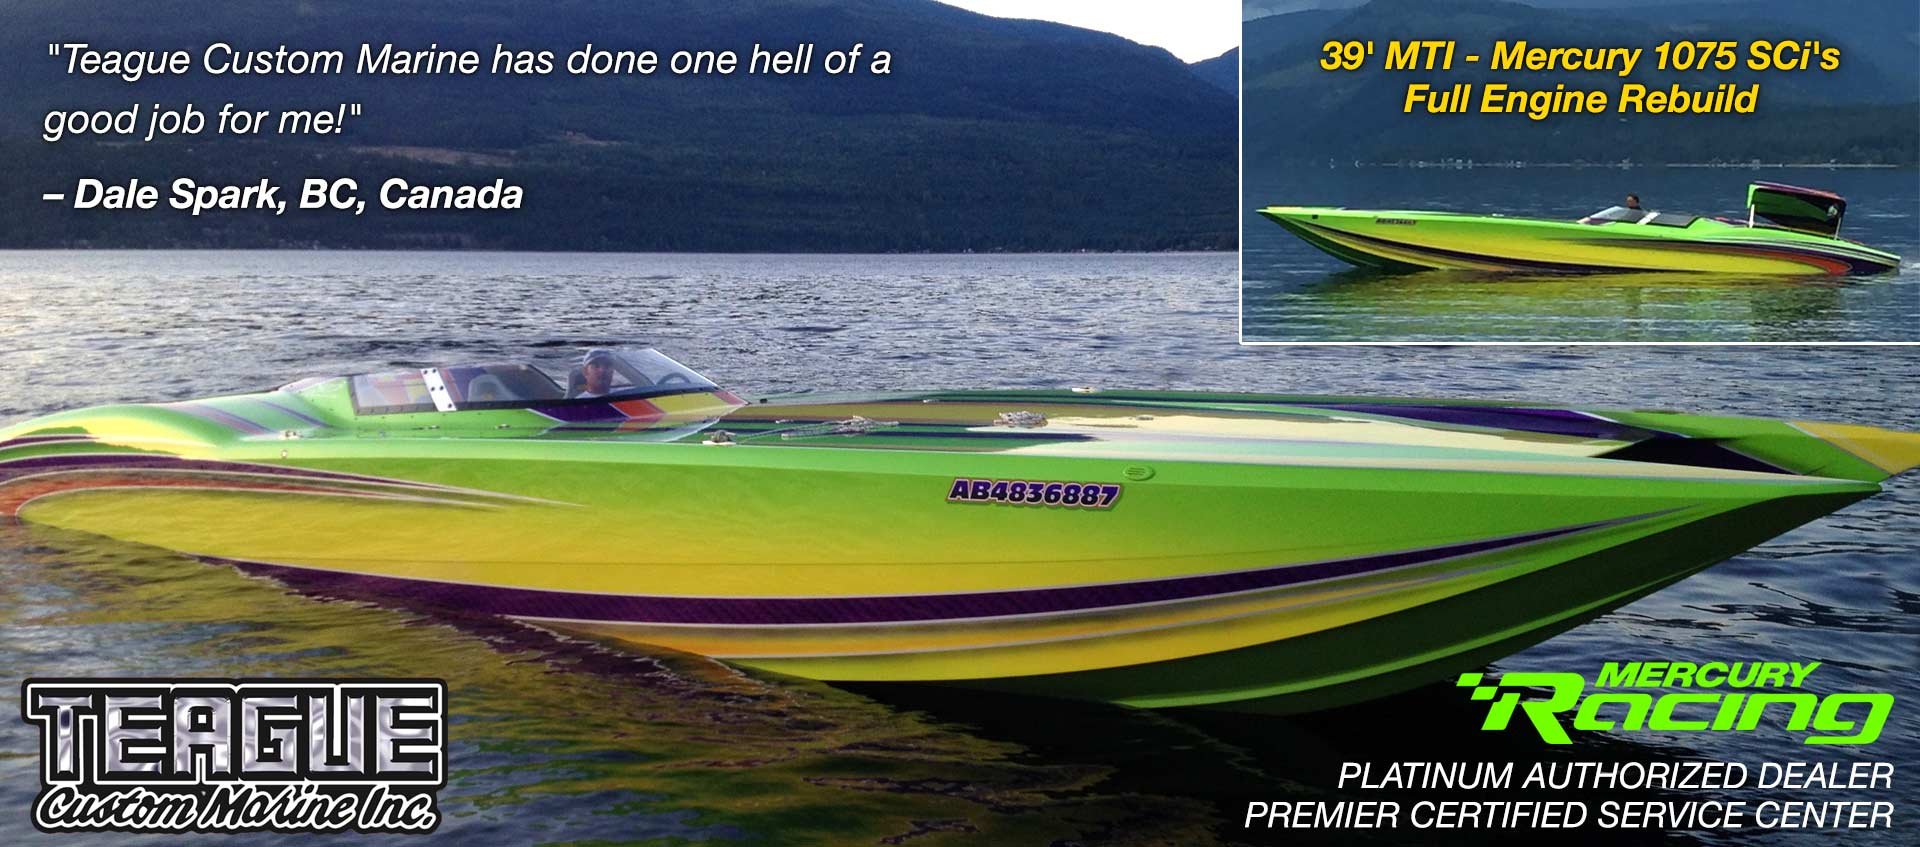 Testimonial: Teague Custom Marine has done one hell of a job for me!